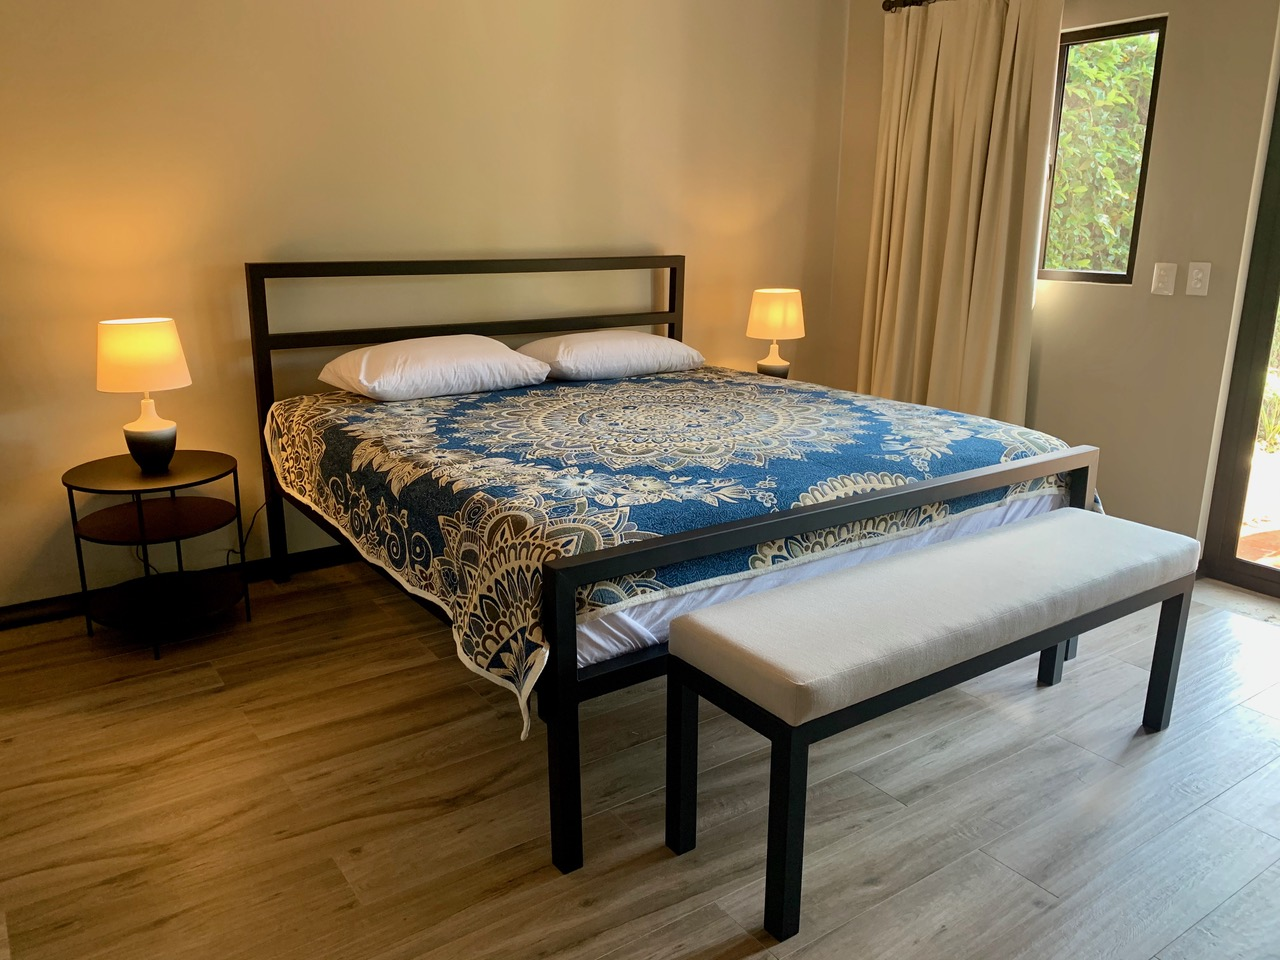 Fourth bedroom in private casita with king-size bed.